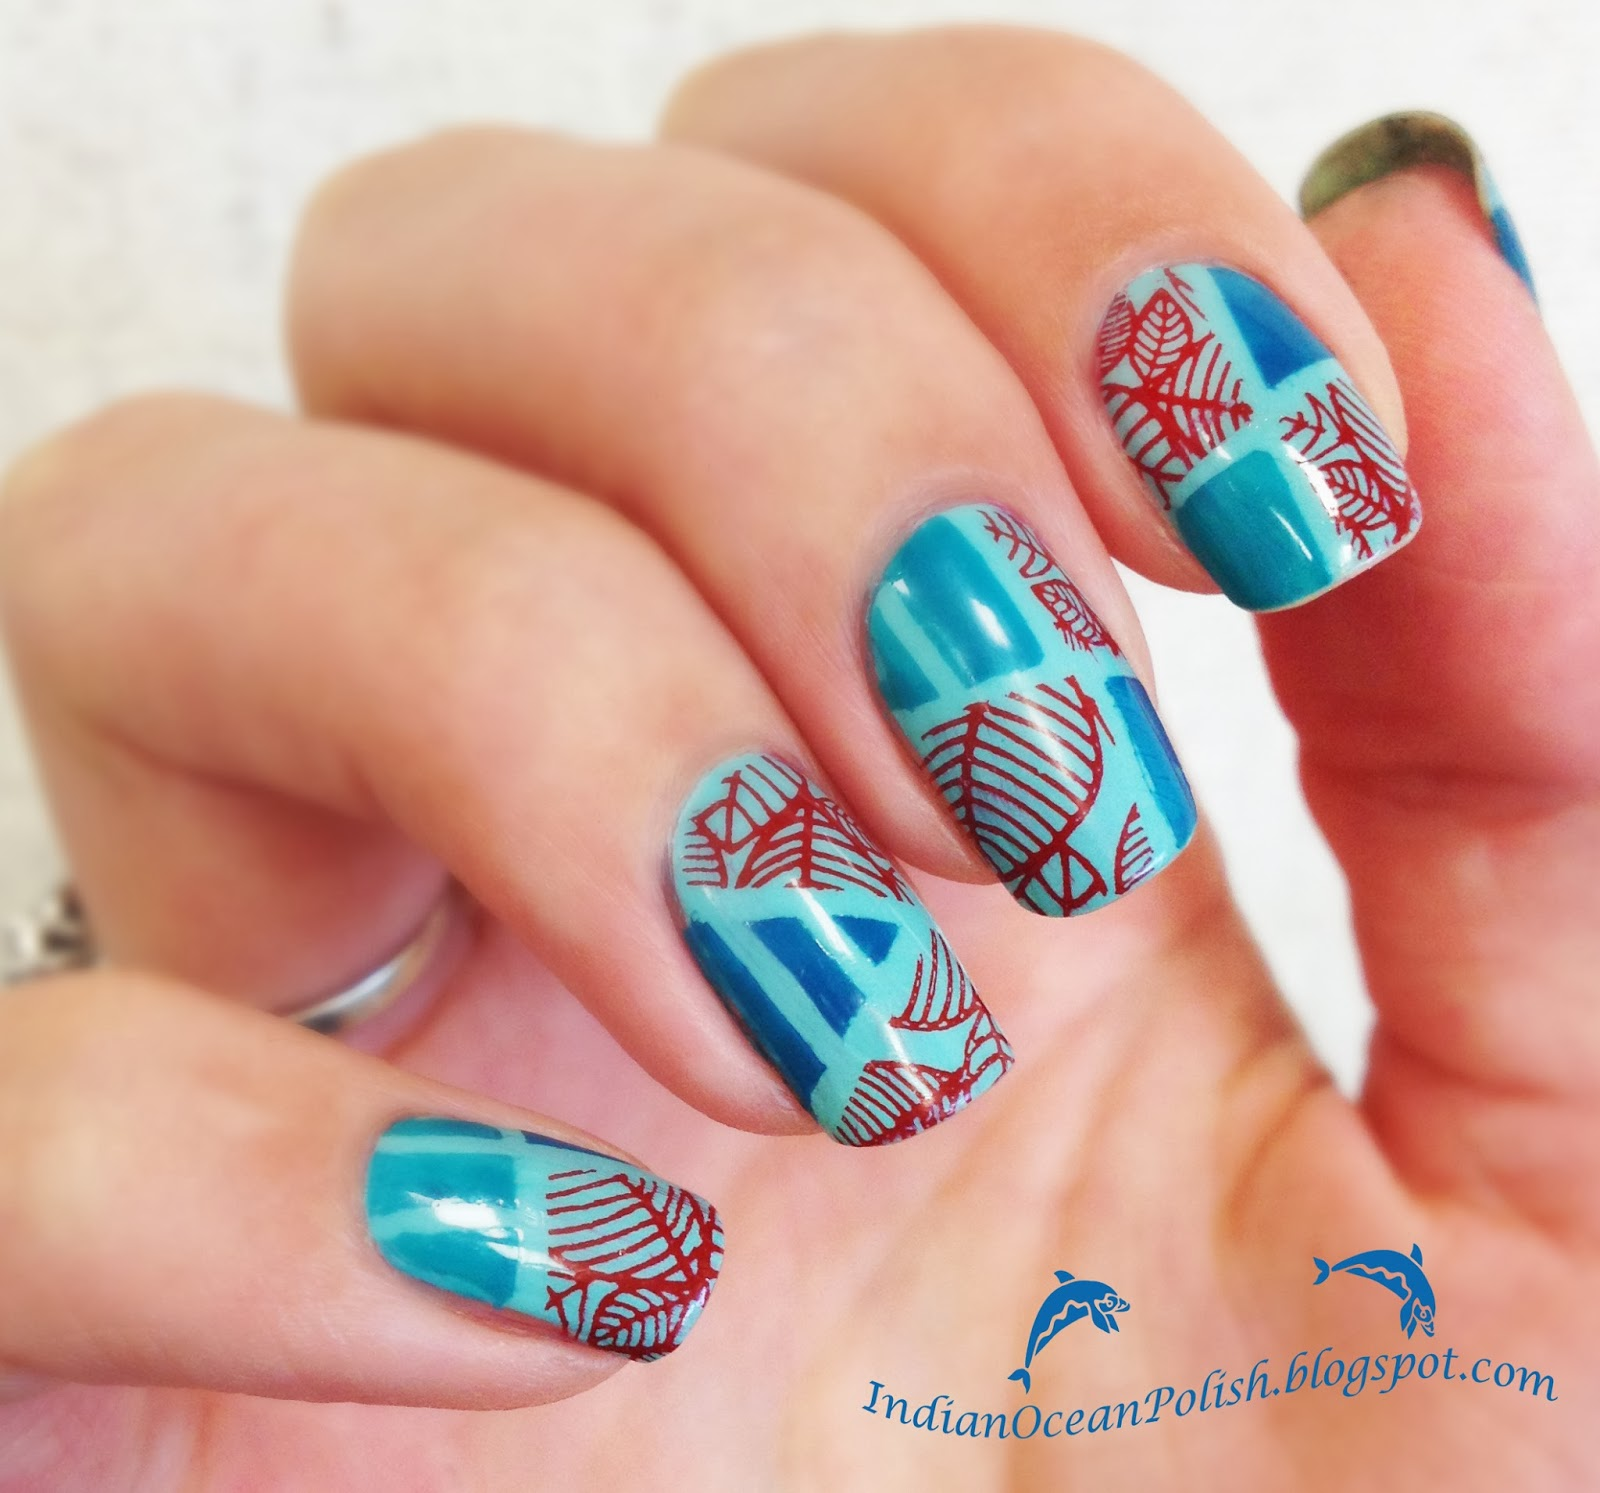 Indian Ocean Polish Colour Blocking Nails With Opi Fly: Indian Ocean Polish: How To Use Too Small Stamping Designs